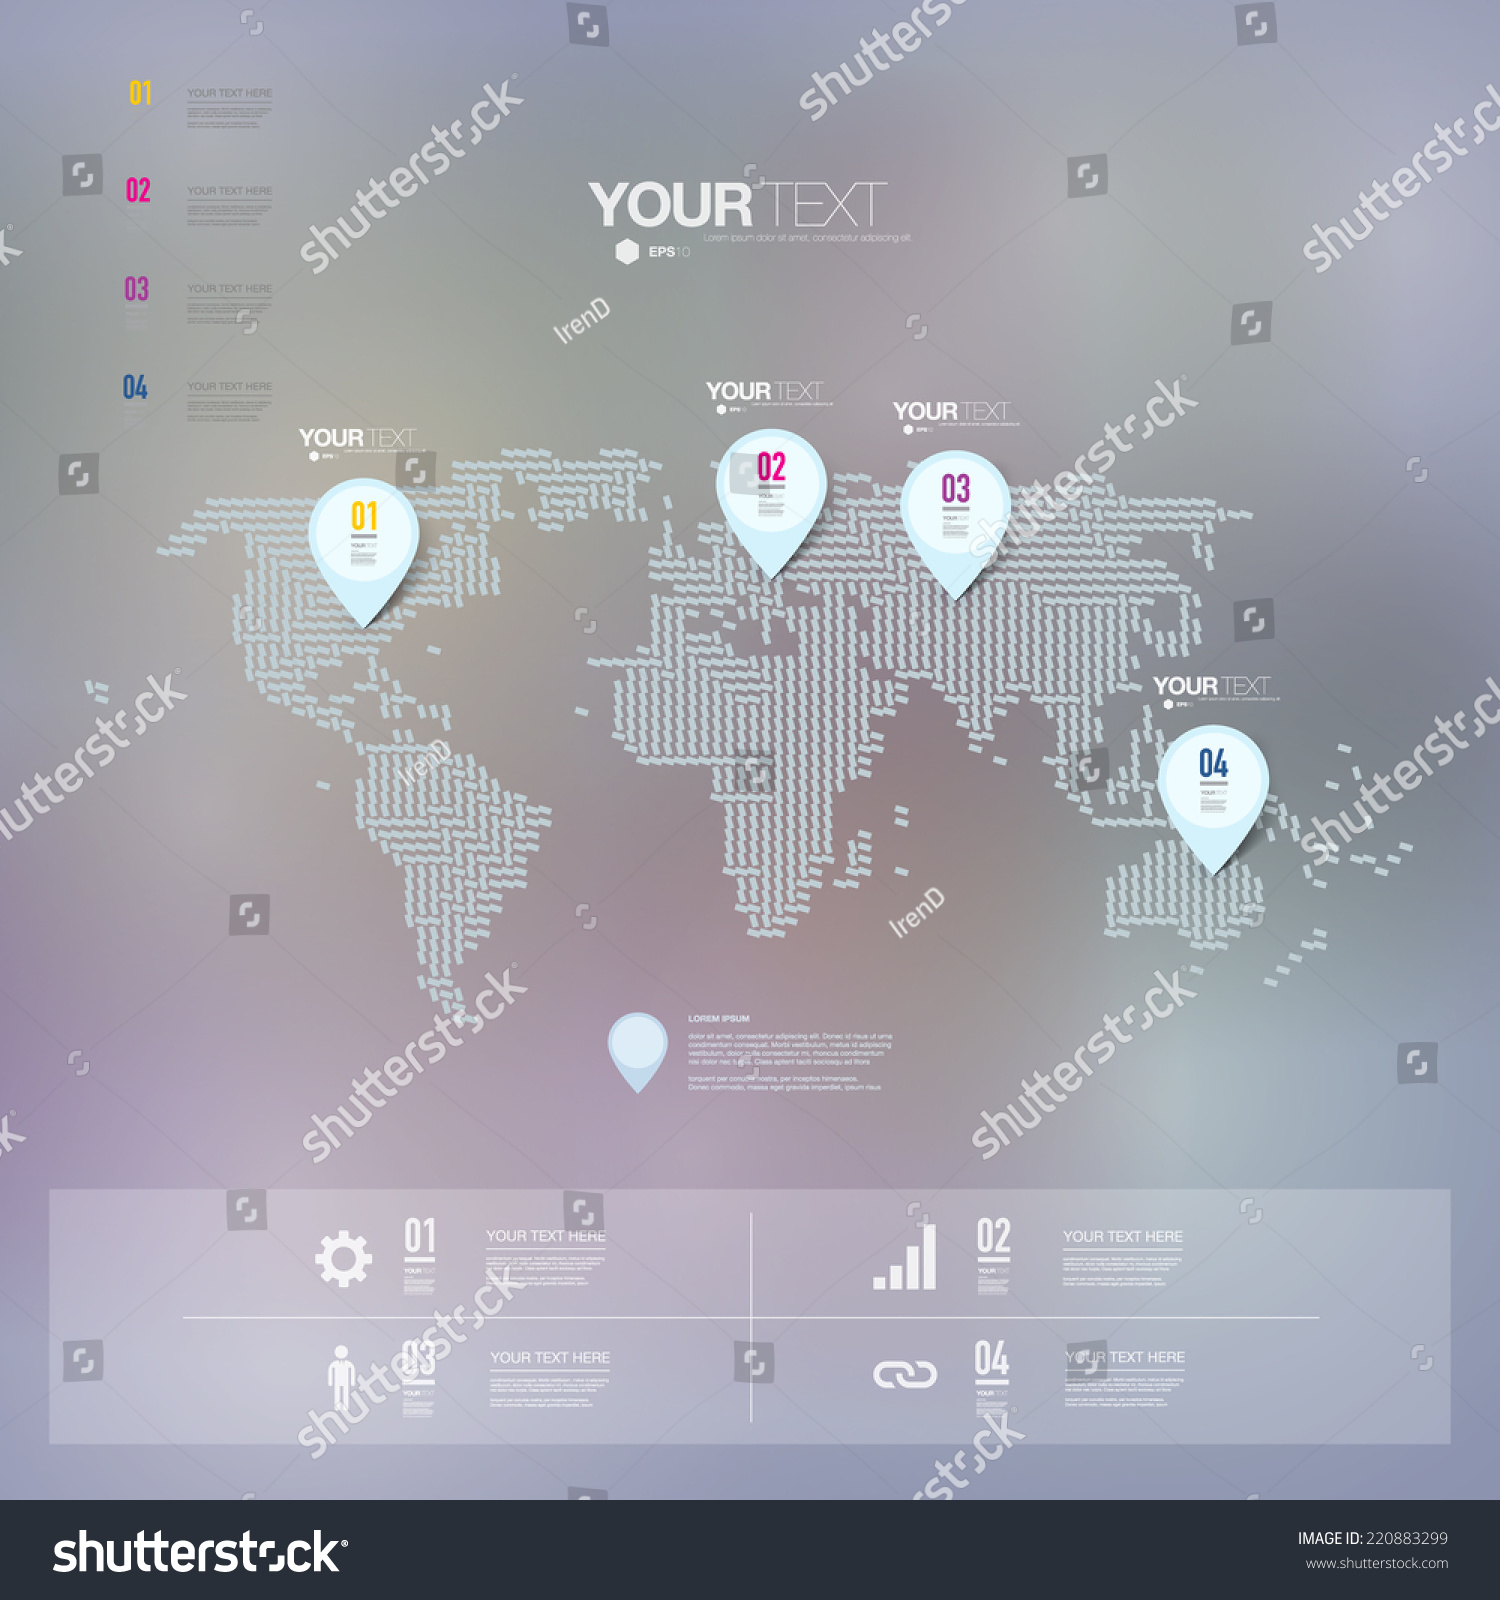 Minimal world map 28 images 20 powerful infographic design kits recent posts gumiabroncs Gallery